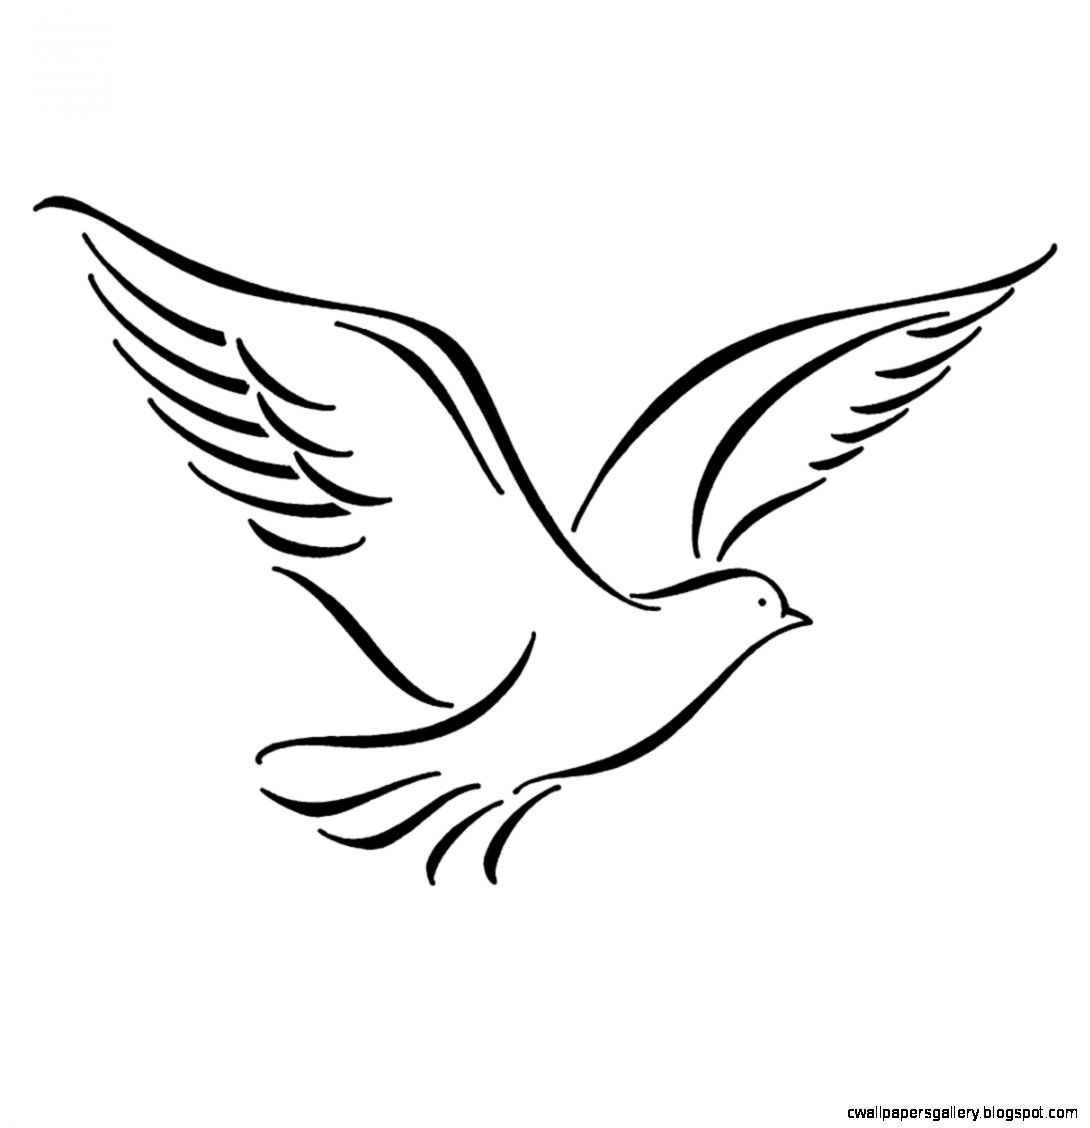 flying bird drawing at getdrawings | free for personal use